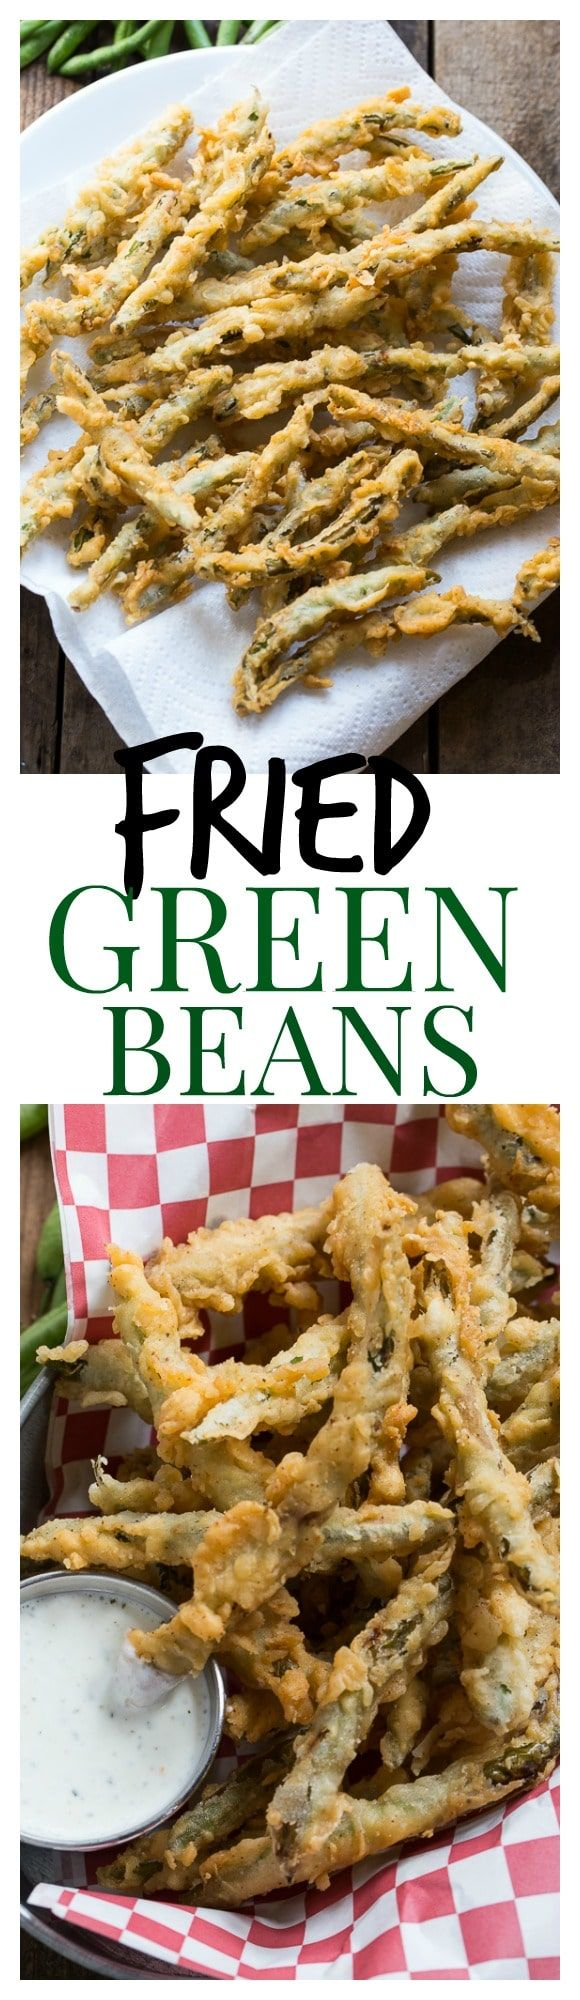 Crispy Fried Green Beans via @FMSCLiving